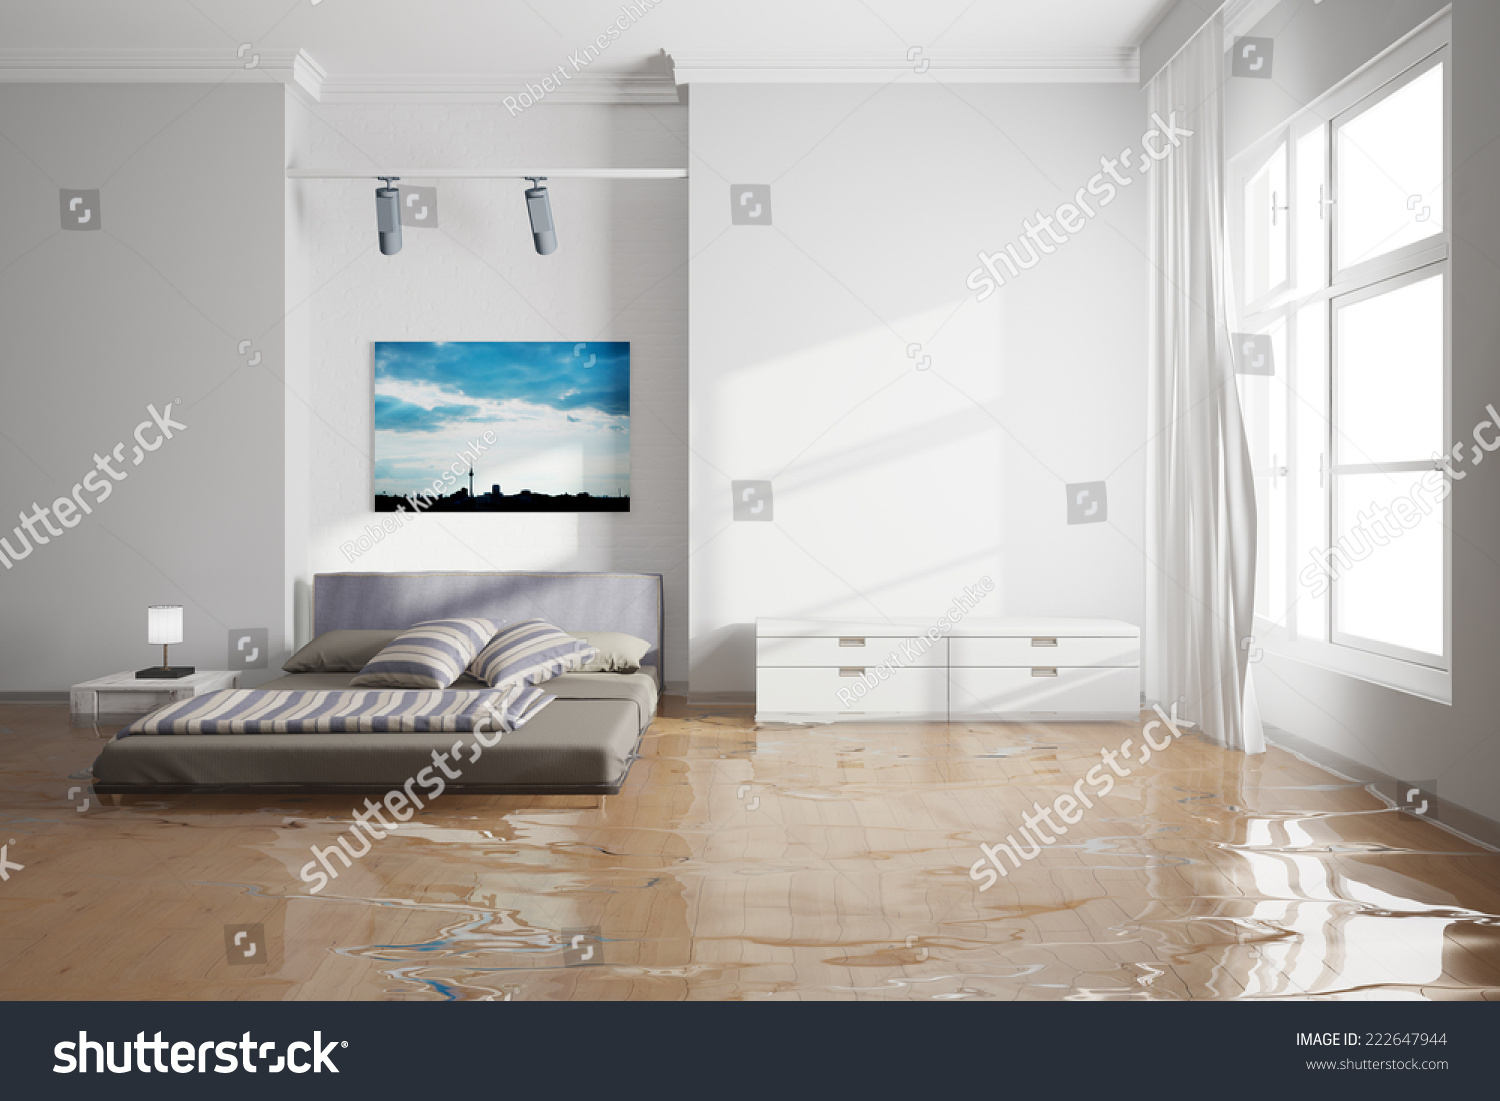 In Bedroom Water Damage In Bedroom After Leak With Wet Bed Stock Photo